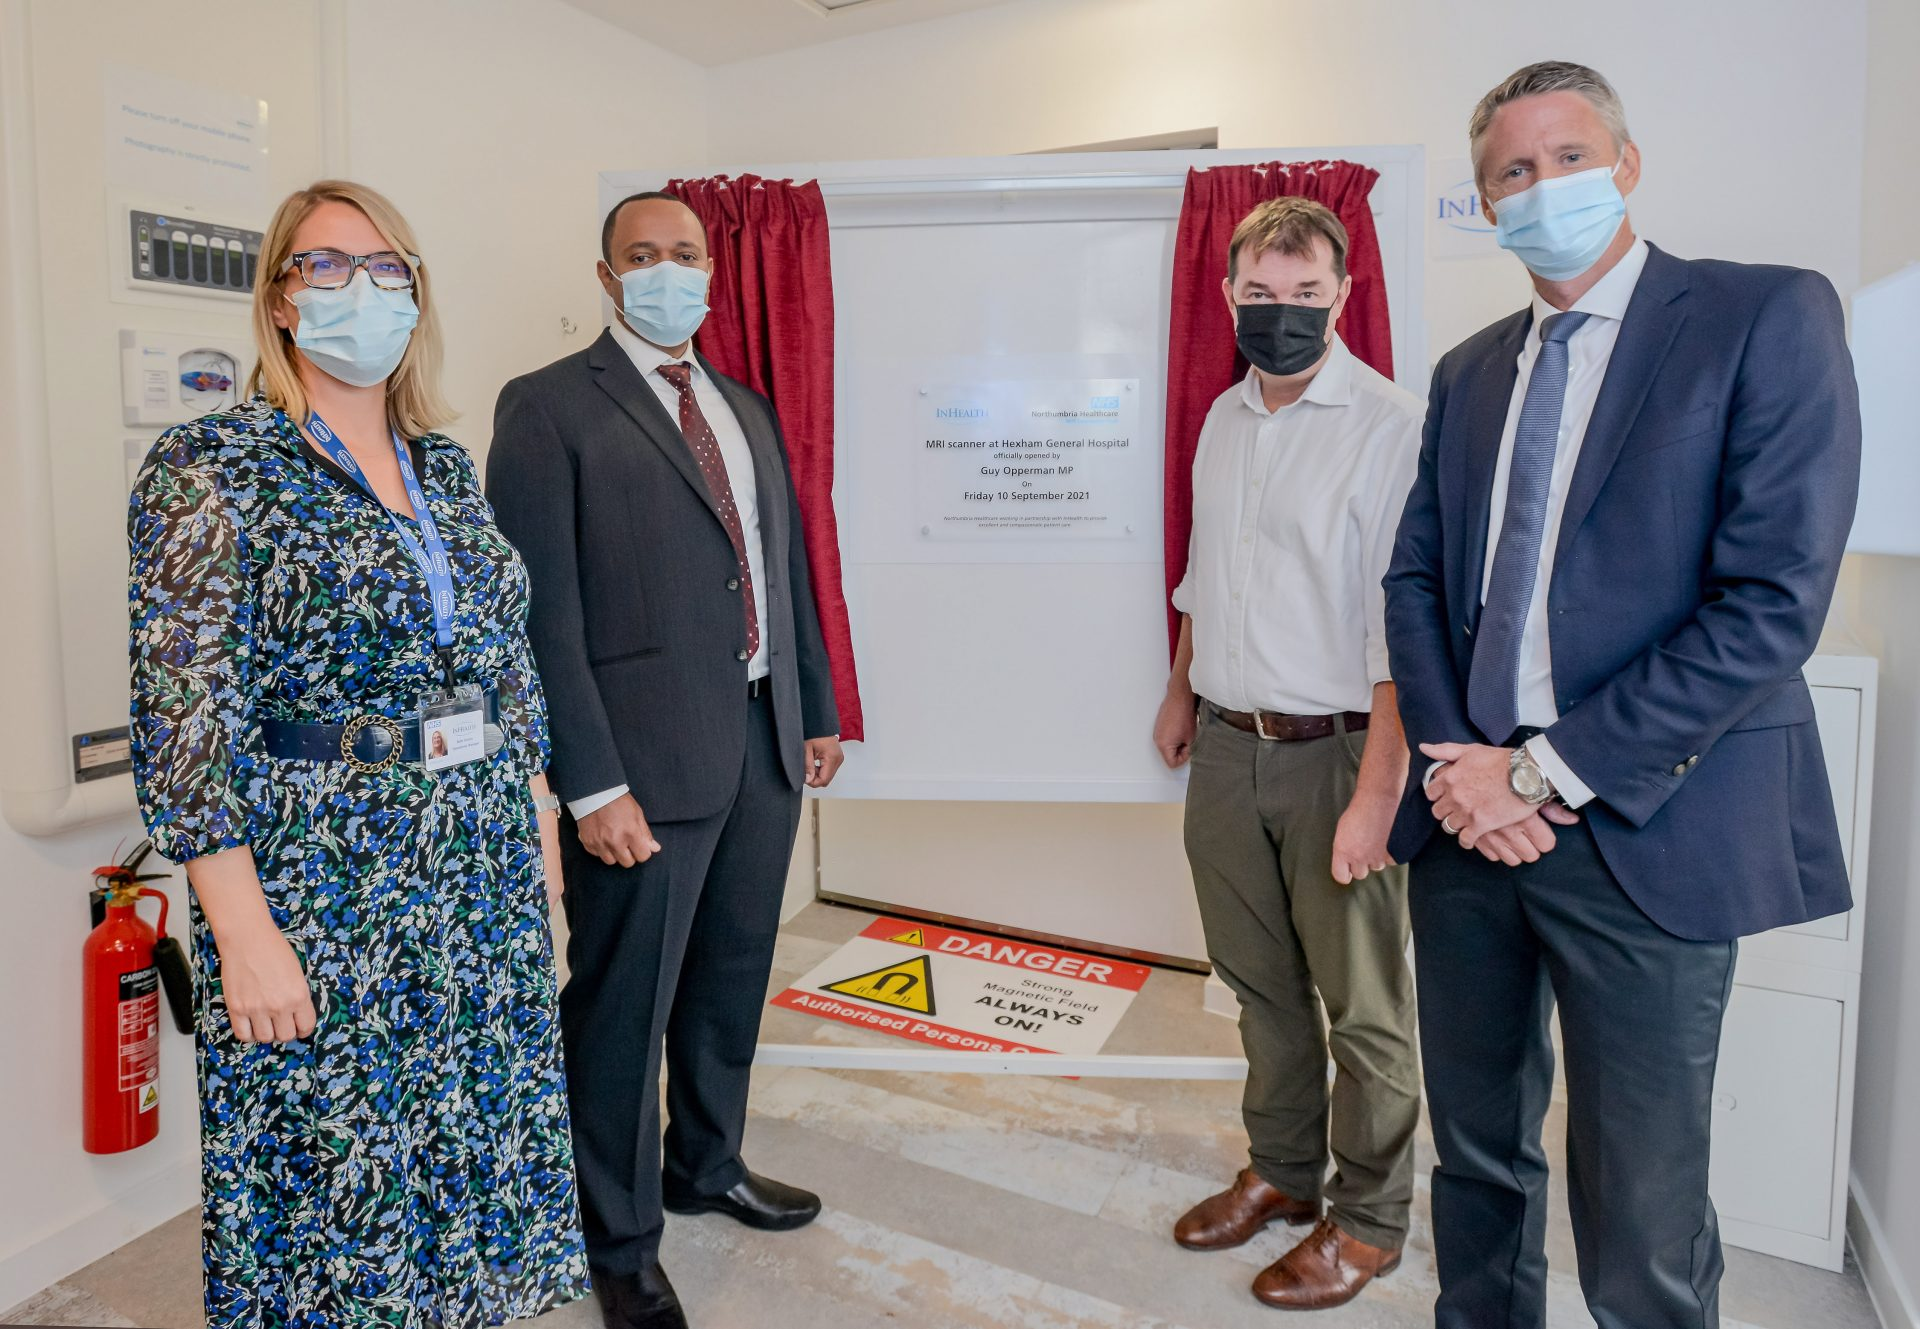 Official opening for state-of-the-art scanner at Hexham hospital